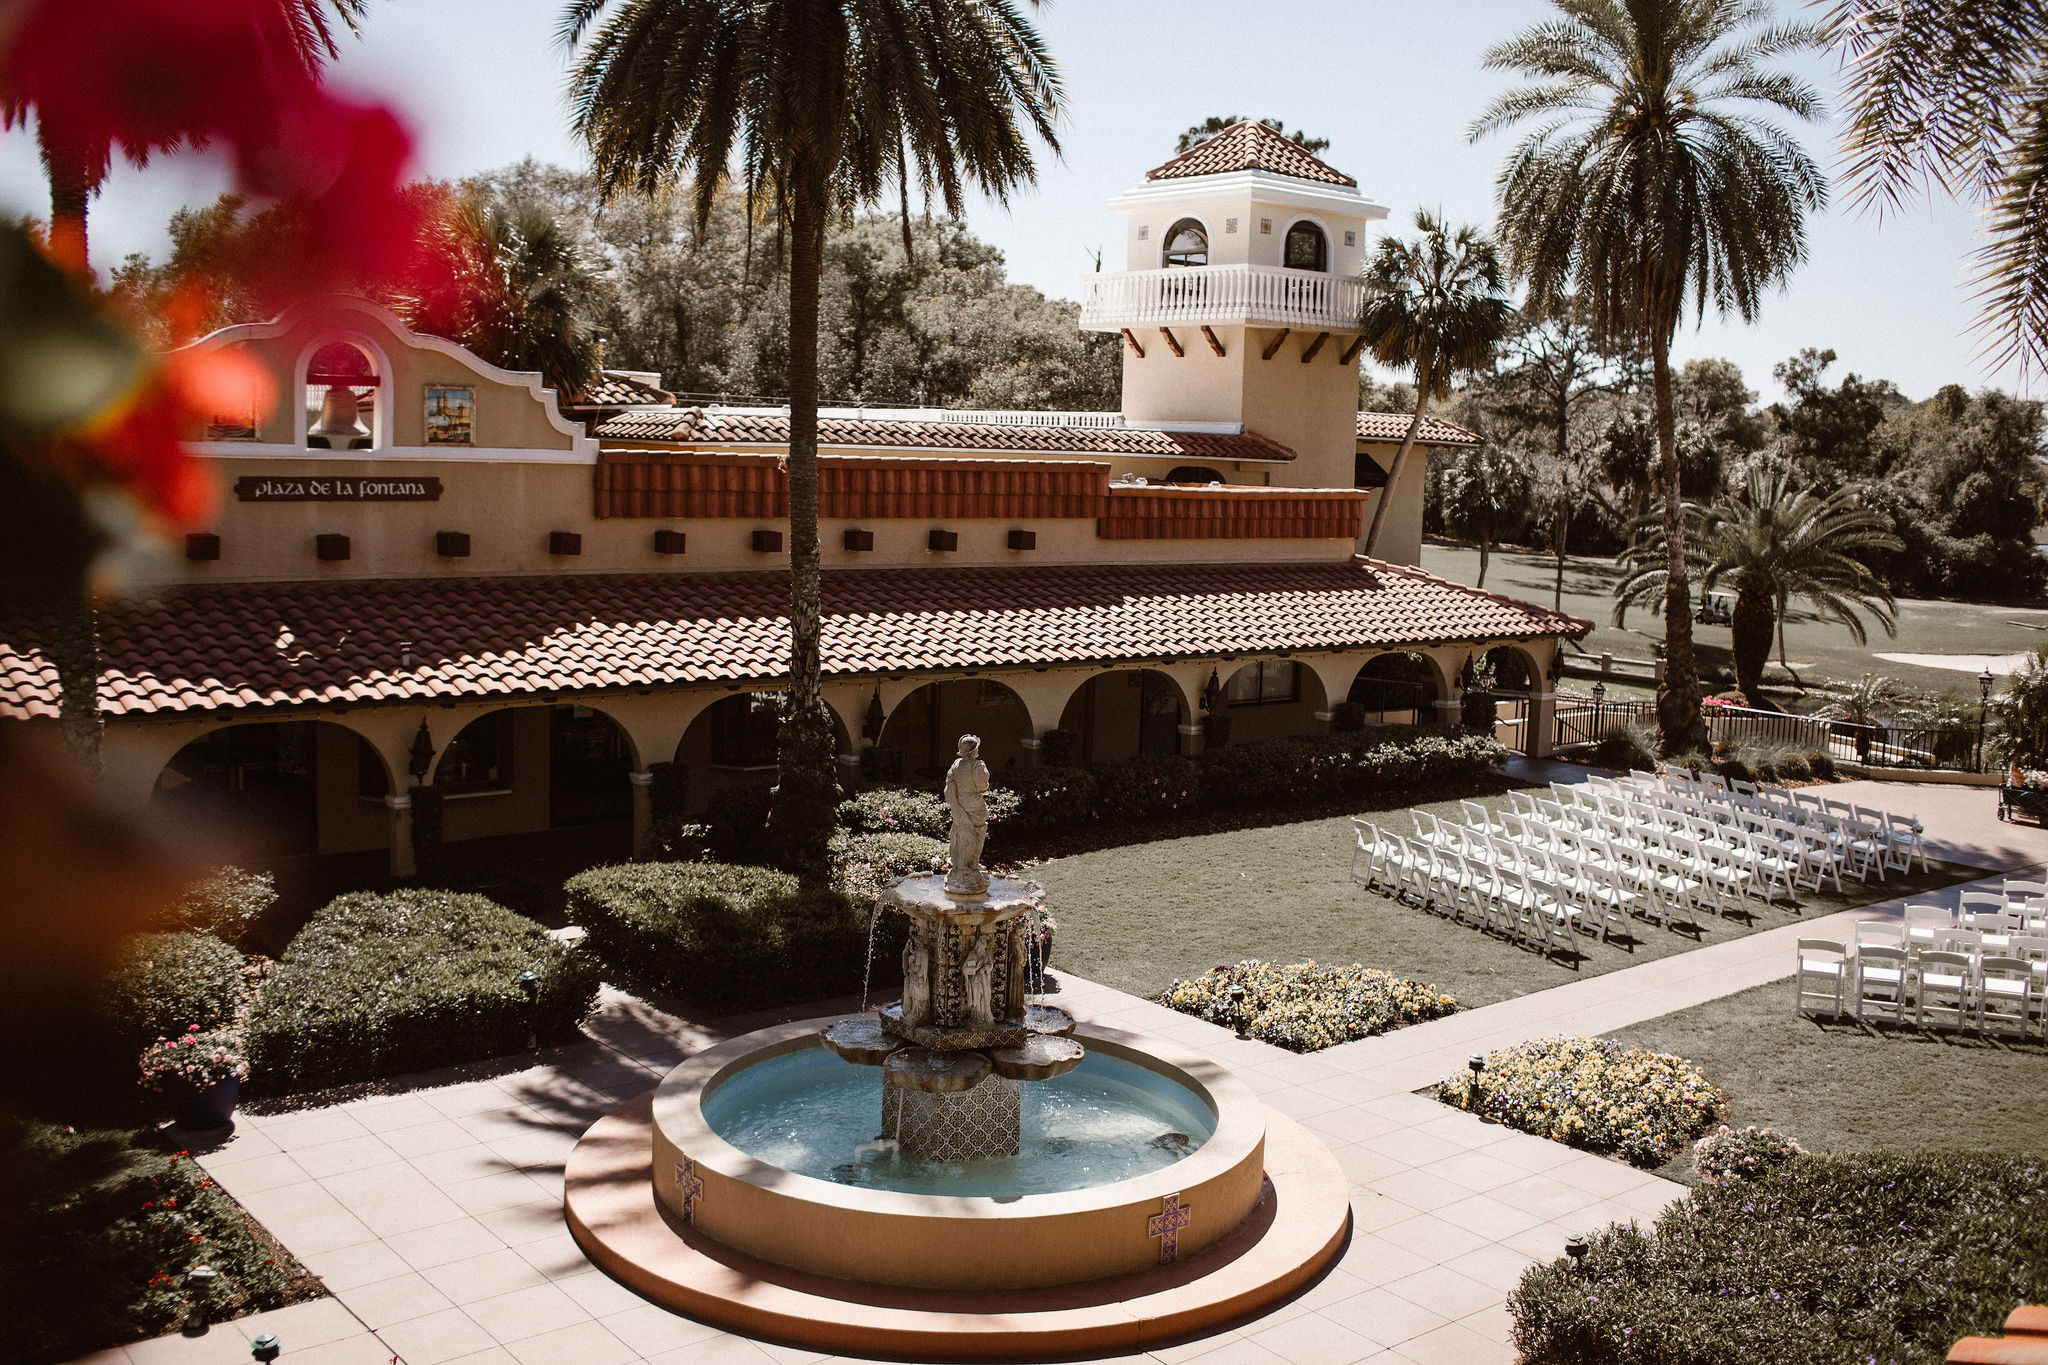 Mission Inn Resort Plaza de la Fontana Romantic Mauve Wedding Ceremony